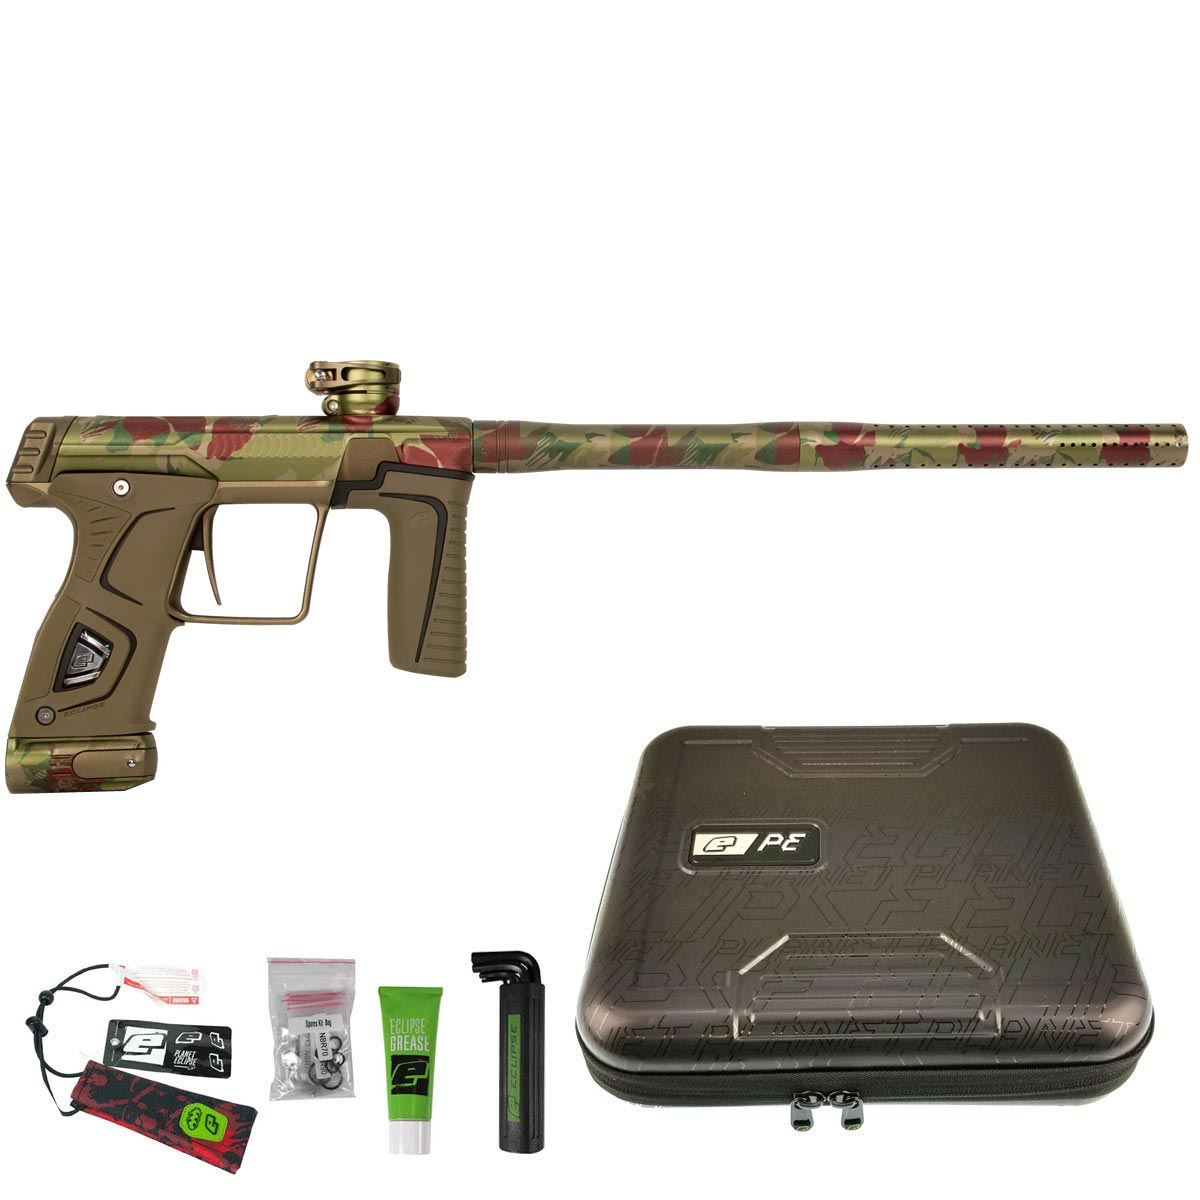 Planet Eclipse Gtek 170R Paintball Marker Predator Camo